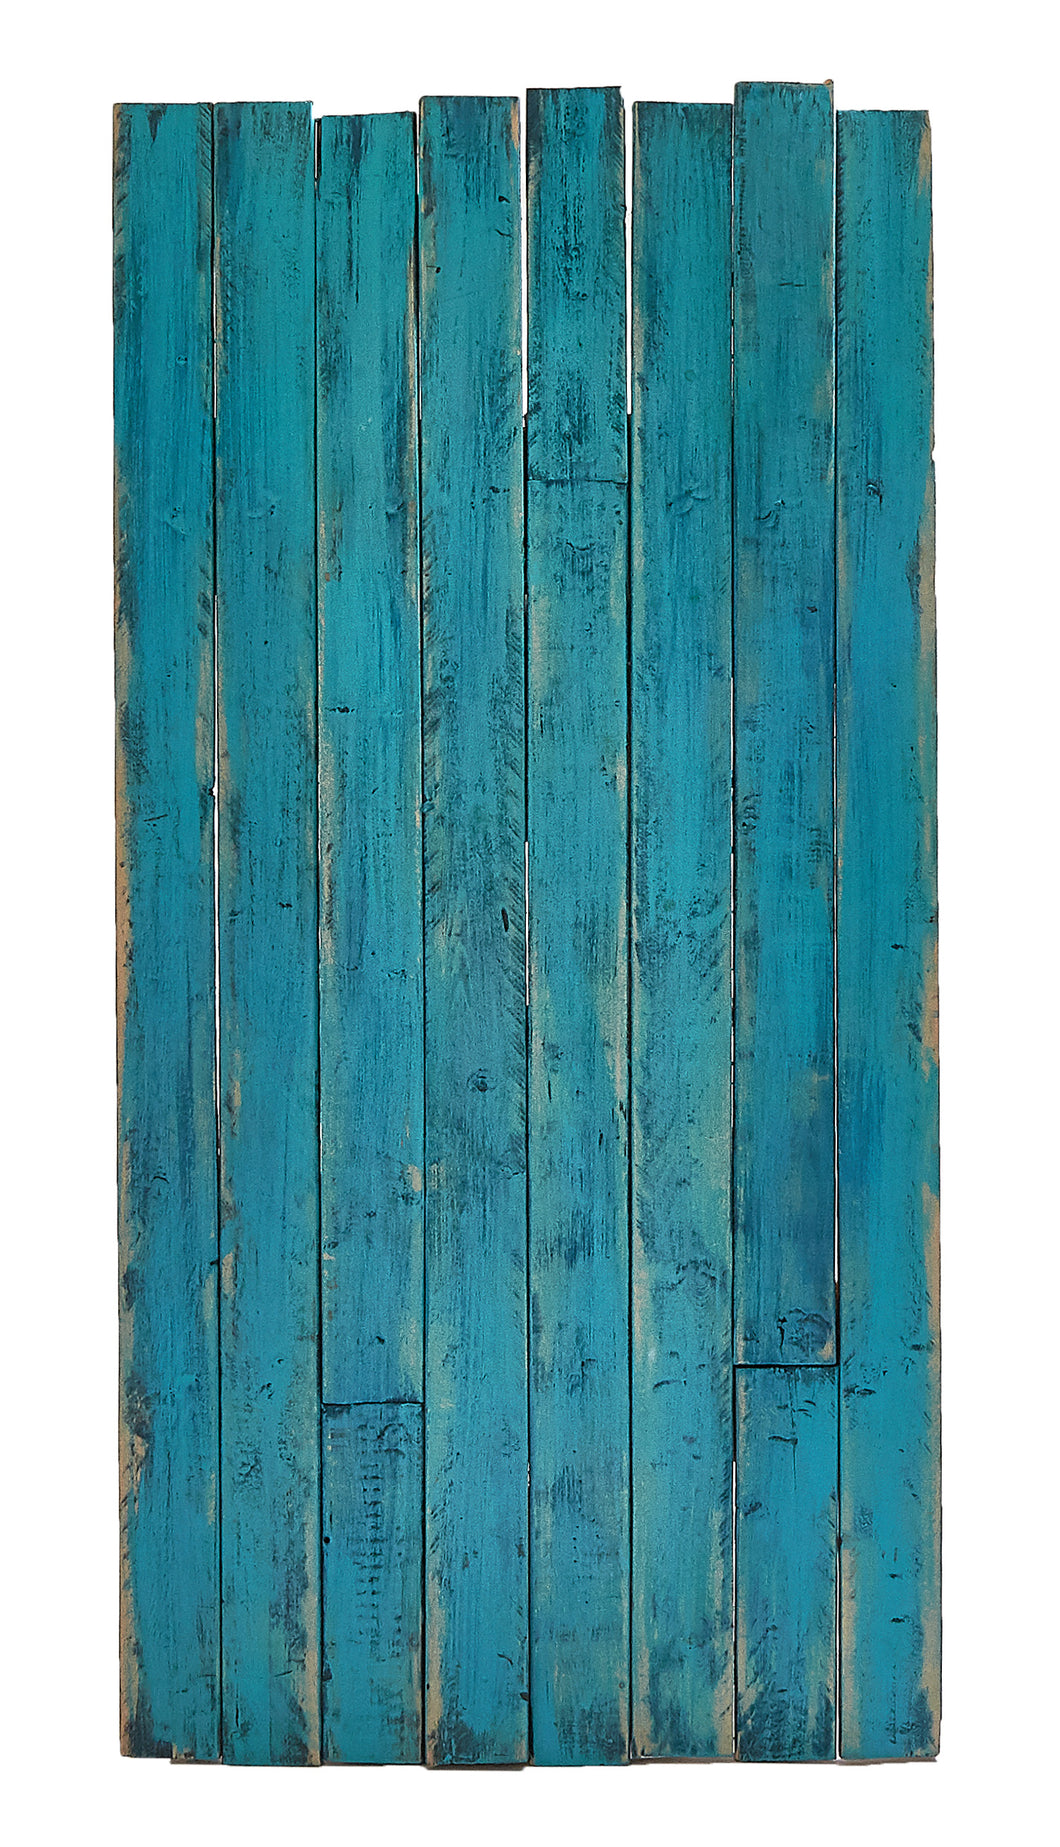 Lg Two-Toned Blue Wood Panel